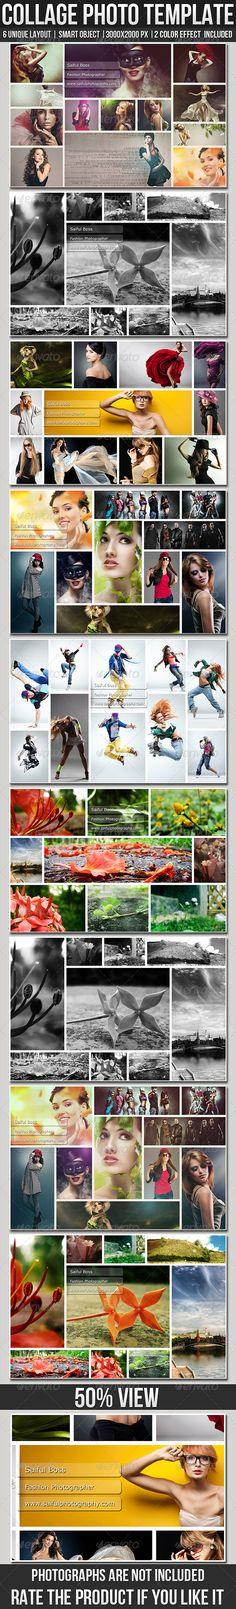 Collage Photo Templates #design Download: http://graphicriver.net/item/collage-photo-templates/6737088?ref=ksioks